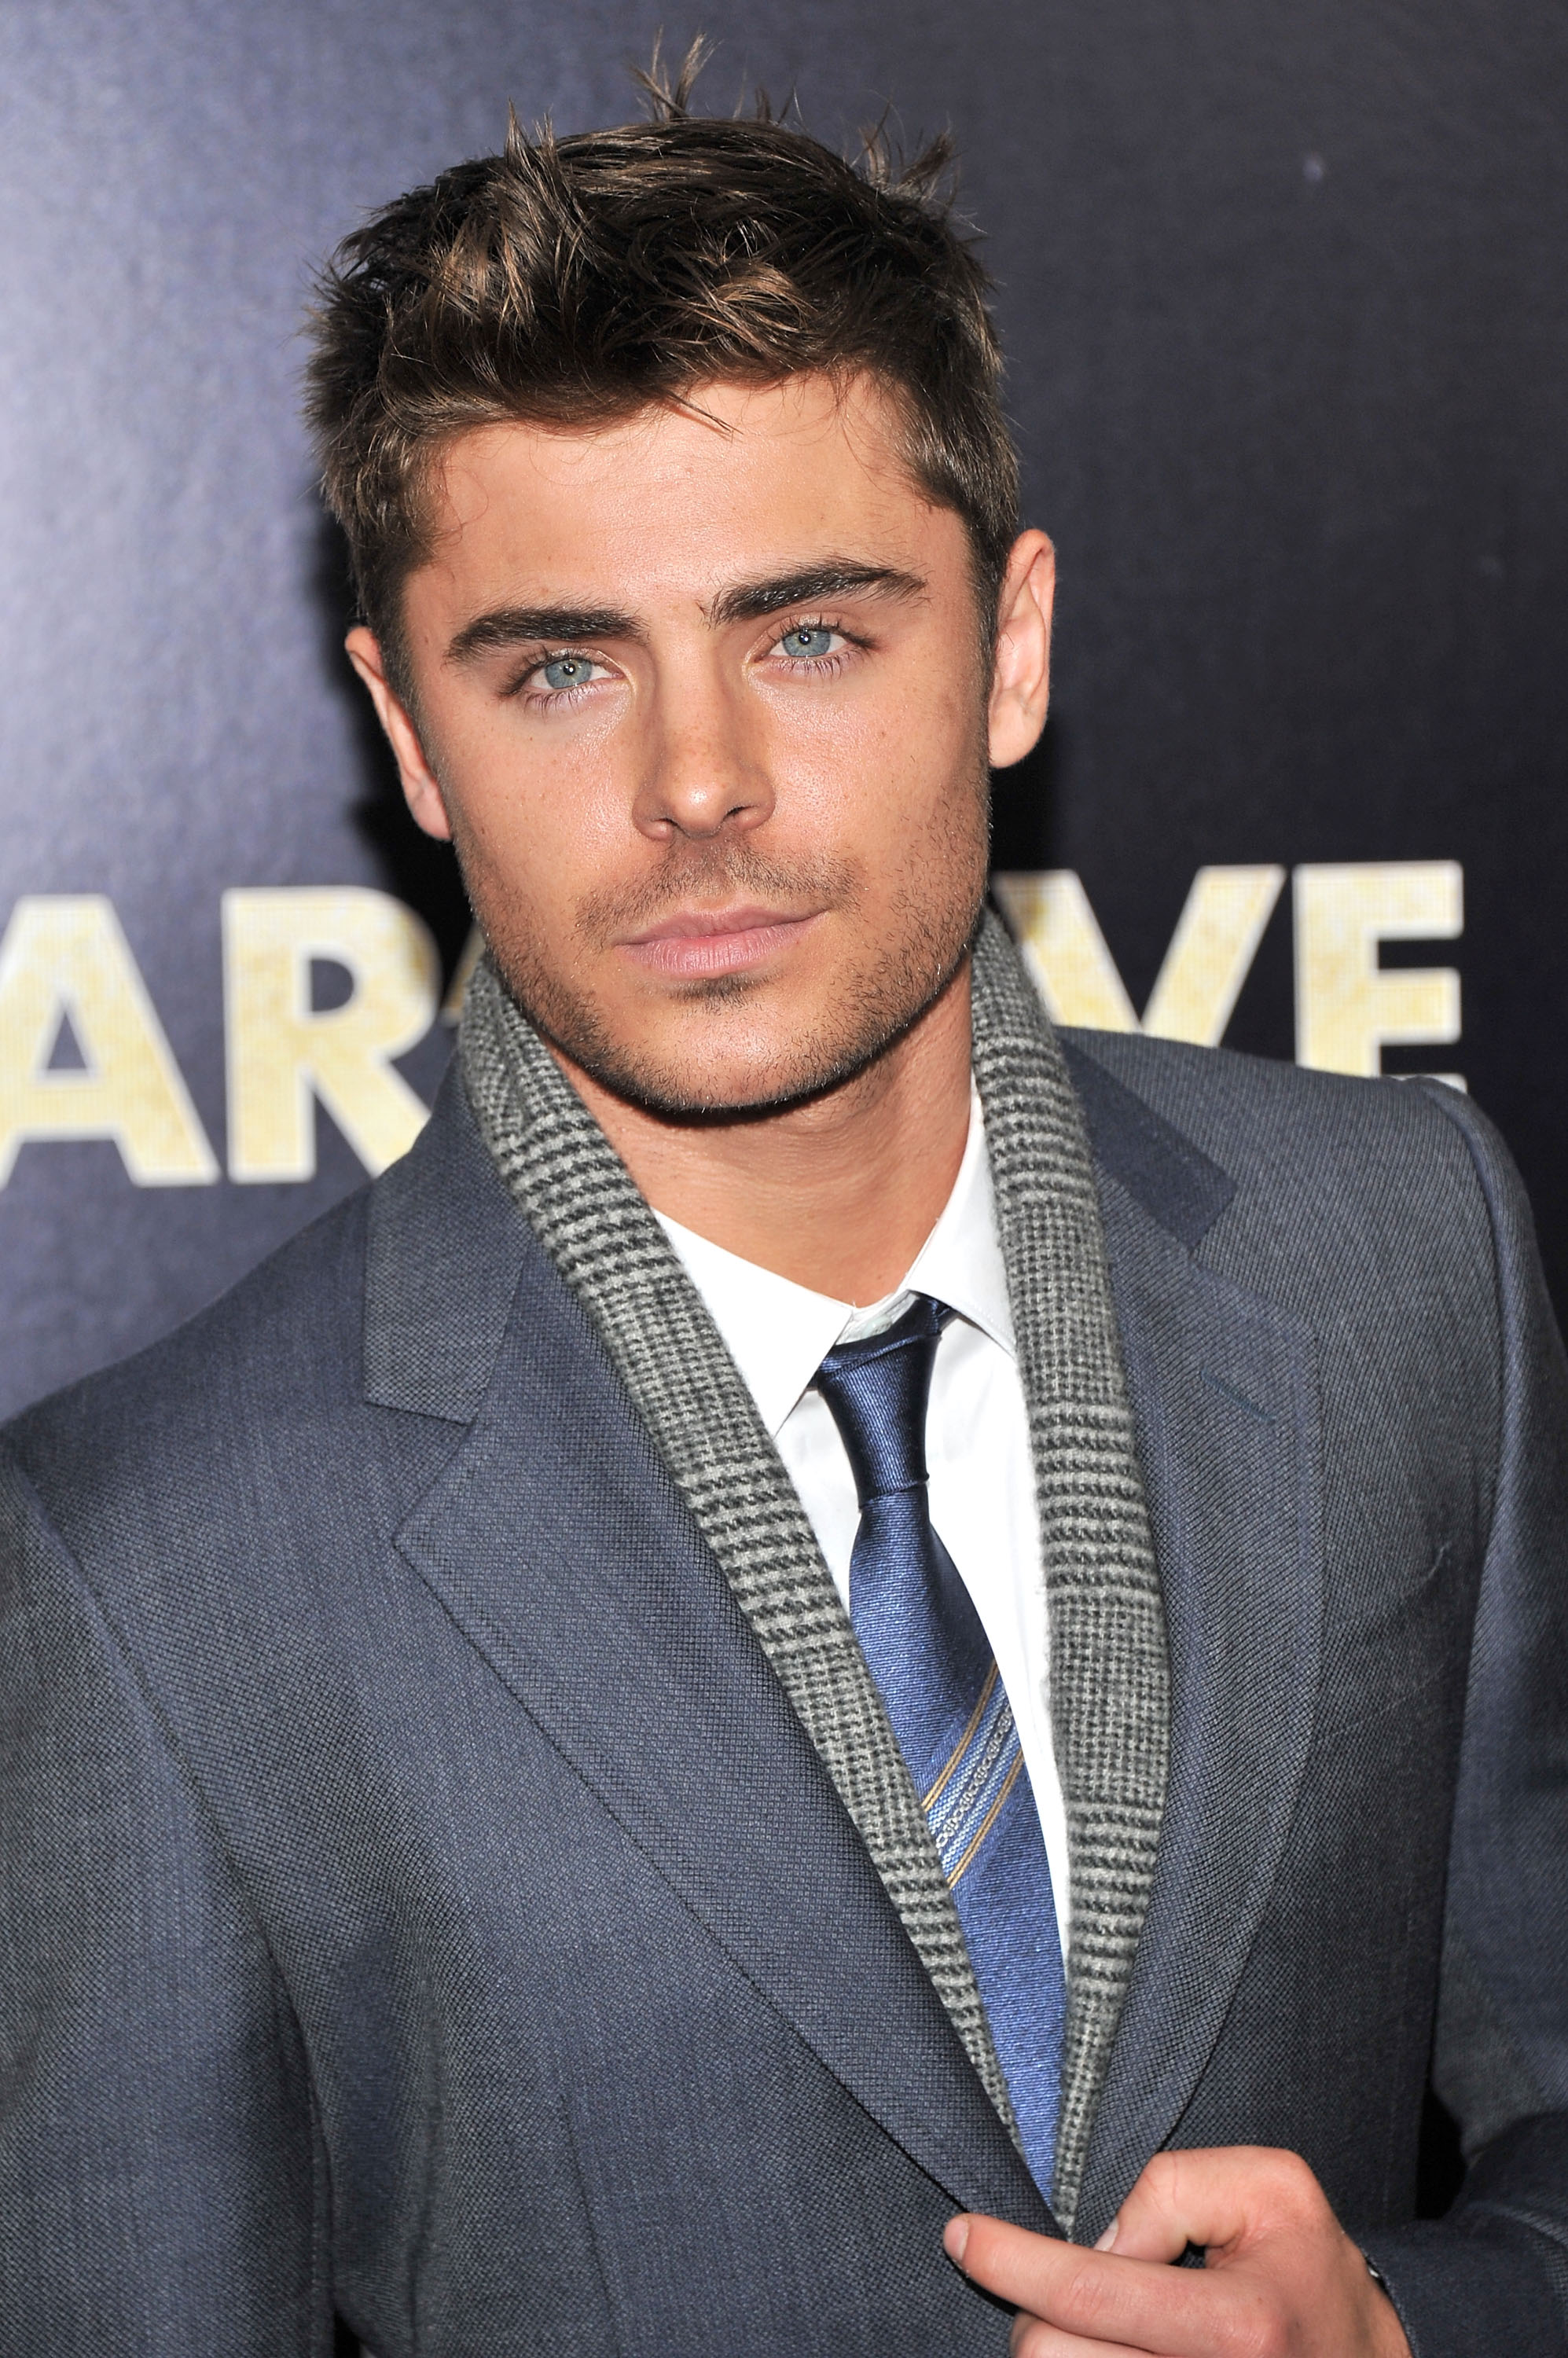 Cute Barbie Wallpapers 240x320 Zac Efron Images Wallpaper And Free Download